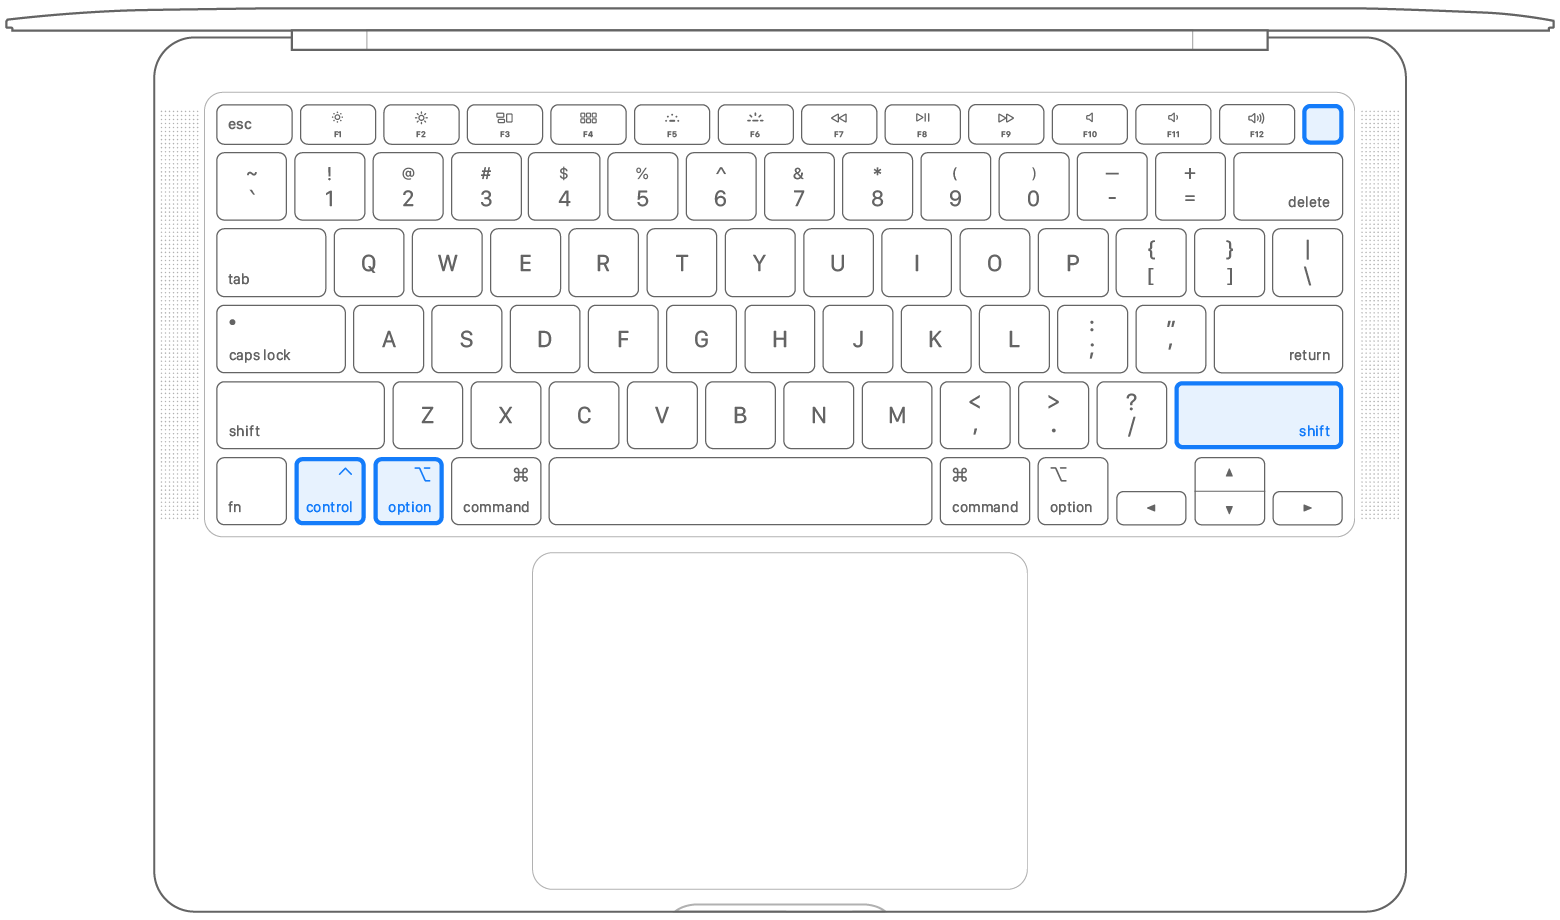 2020-macbook-air-keyboard-diagram-smc